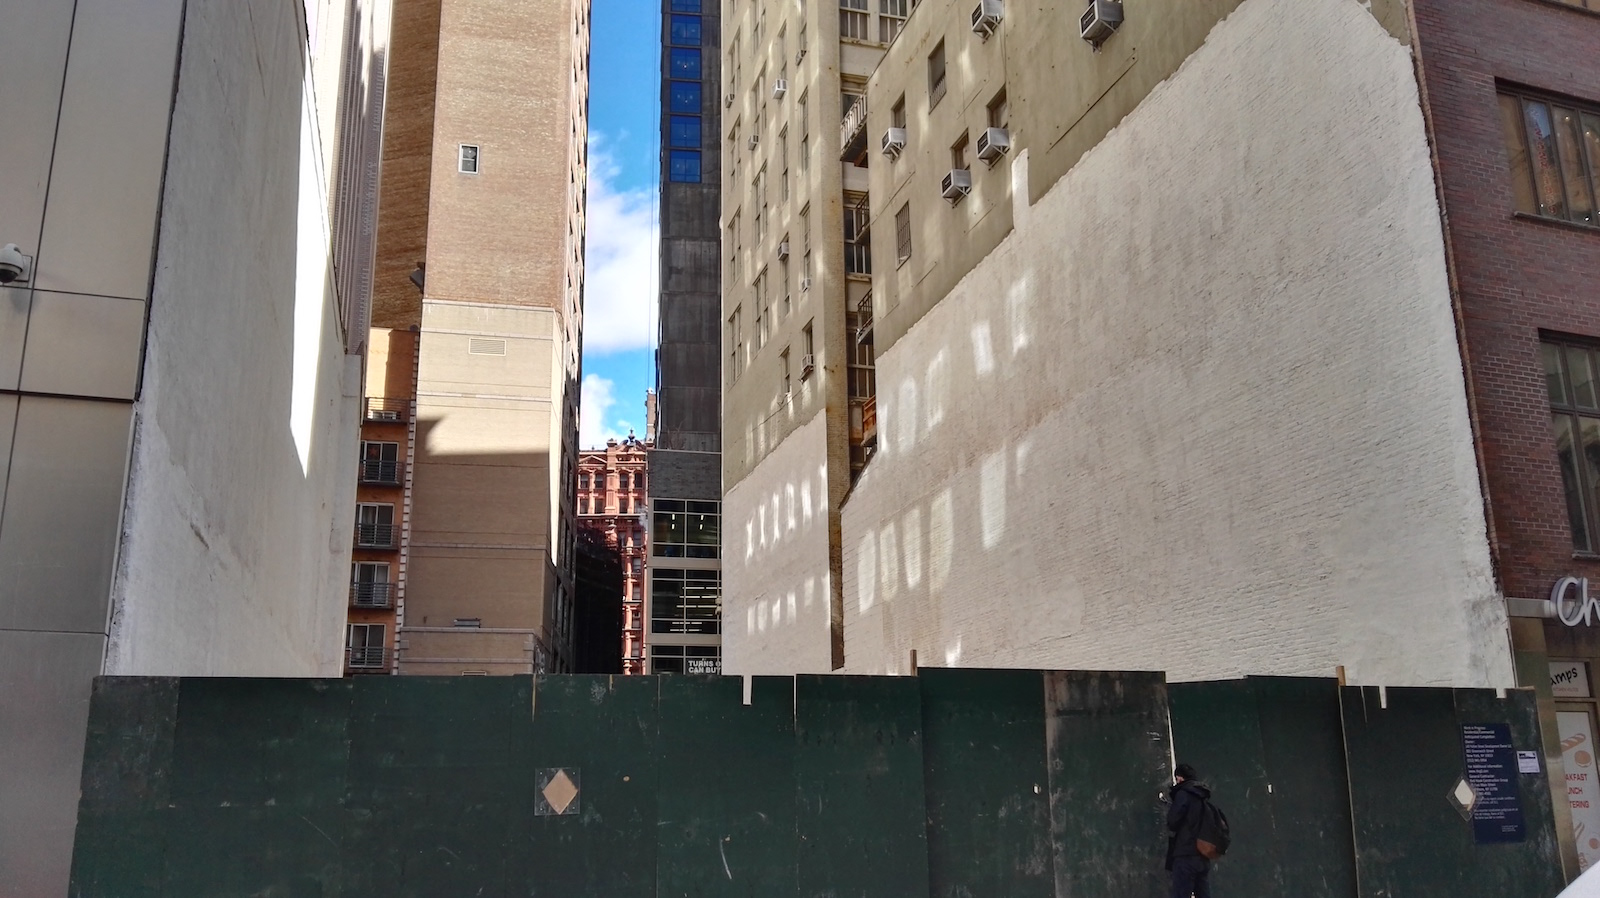 143 Fulton Street construction site, Fulton Street side. Photo courtesy YIMBY reader Rich Brome.